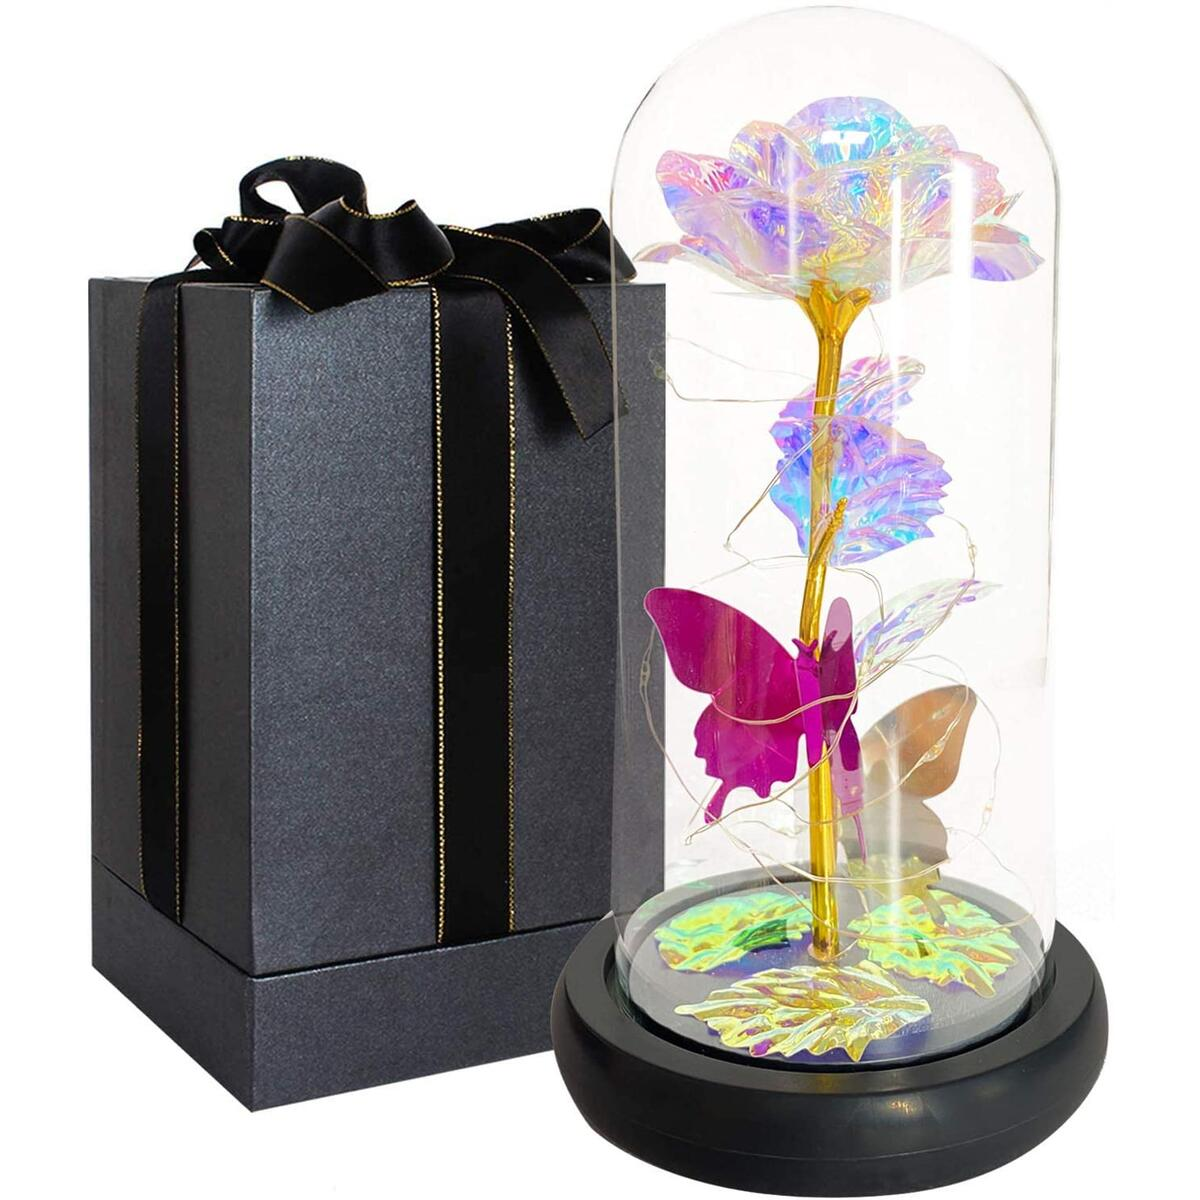 OUBANG Colorful Galaxy Rose Gifts for Her,Artificial Rose Crystal Rose with Led Decor,Lasts Forever in Glass Dome,Unique Gifts for Her,Christmas,Wedding,Valentine's Day,Anniversary and Birthday